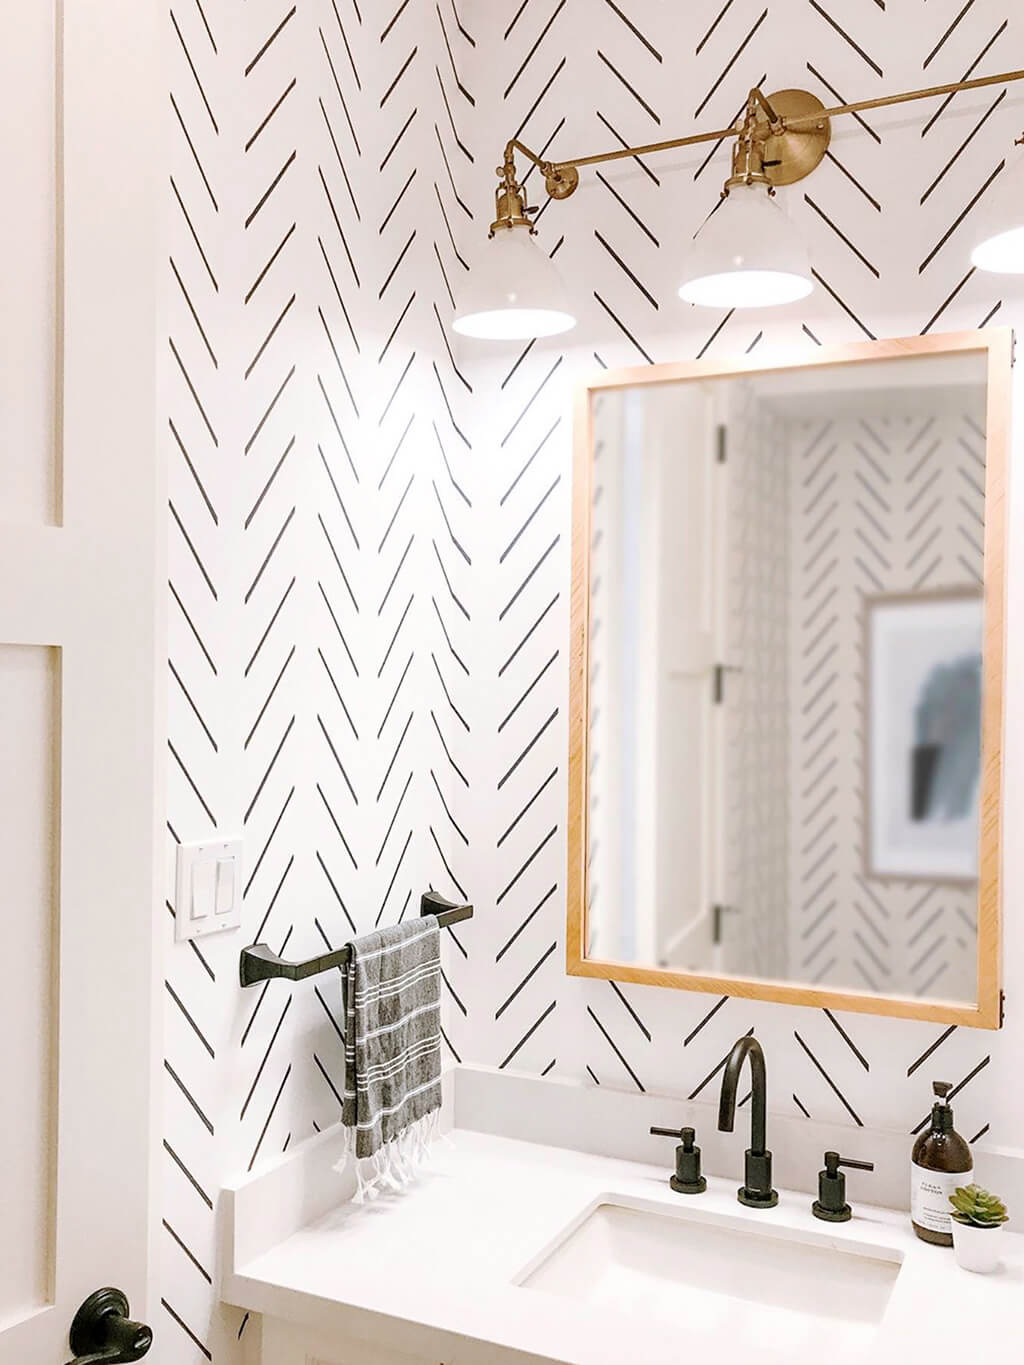 Small white powder room interior with modern herringbone design removable wallpaper, brass decor and black hardware